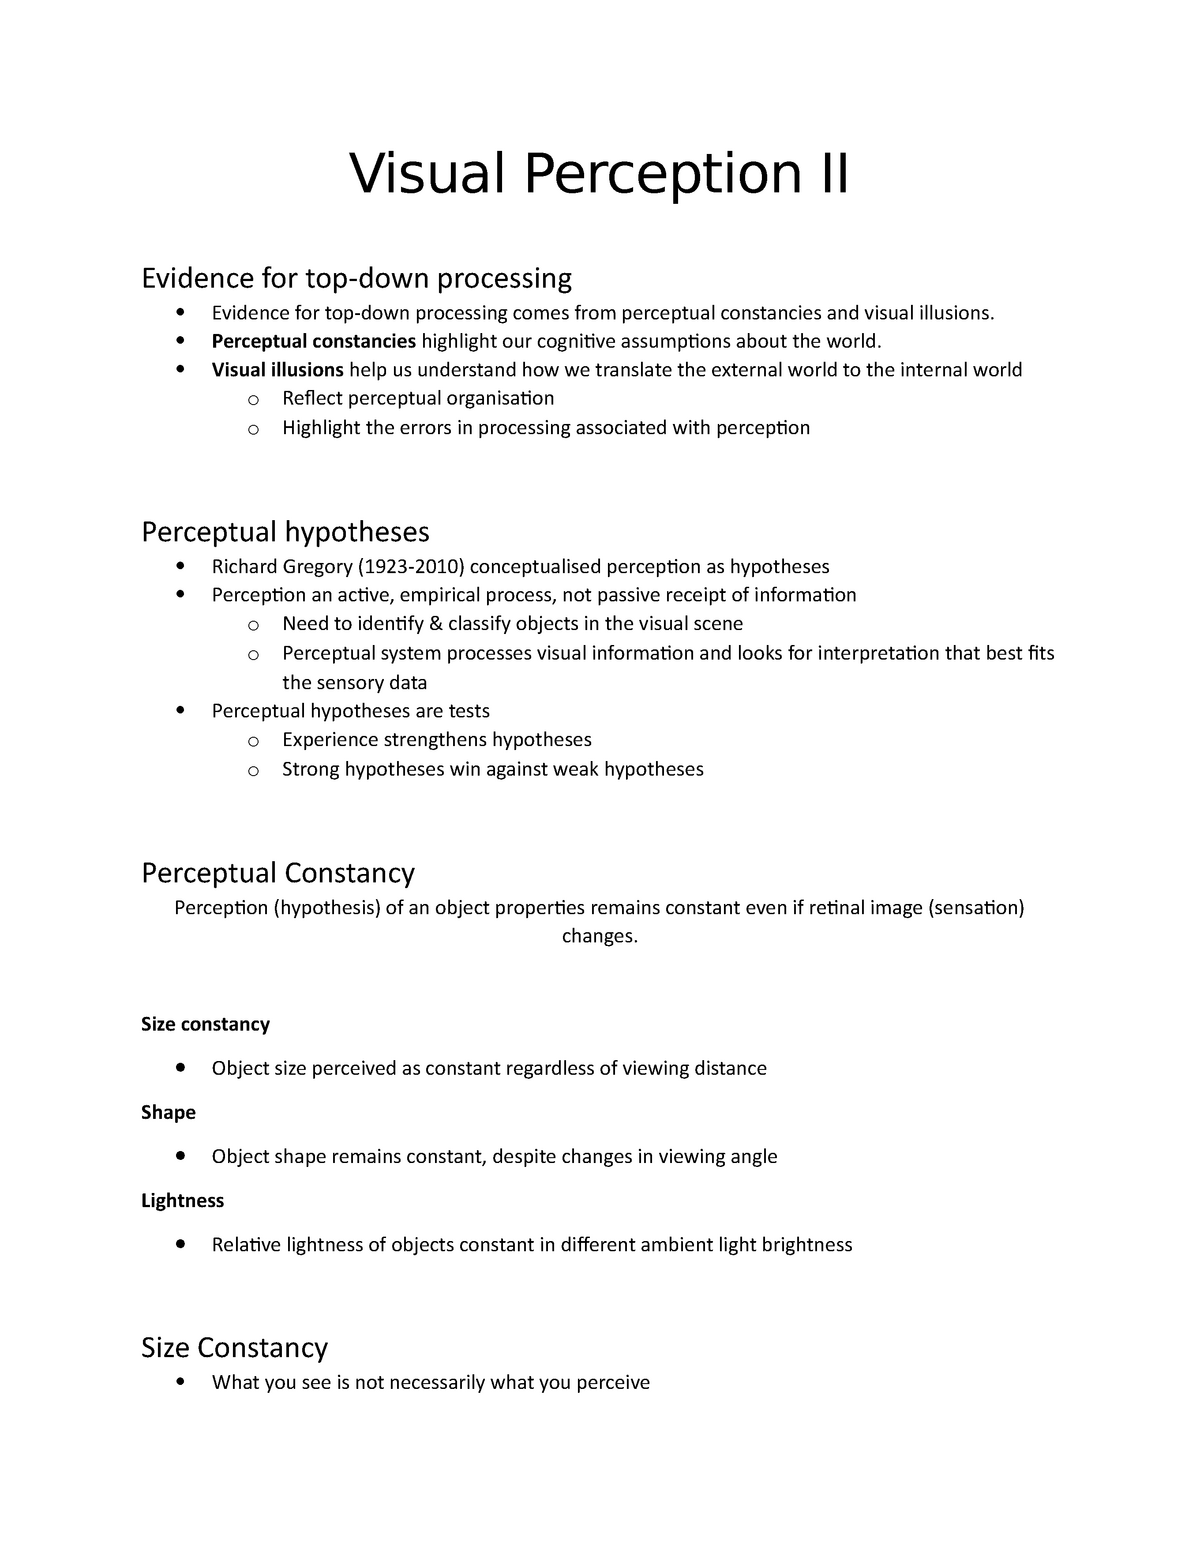 Visual Perception II - PSYC1036: Introduction to Psychology